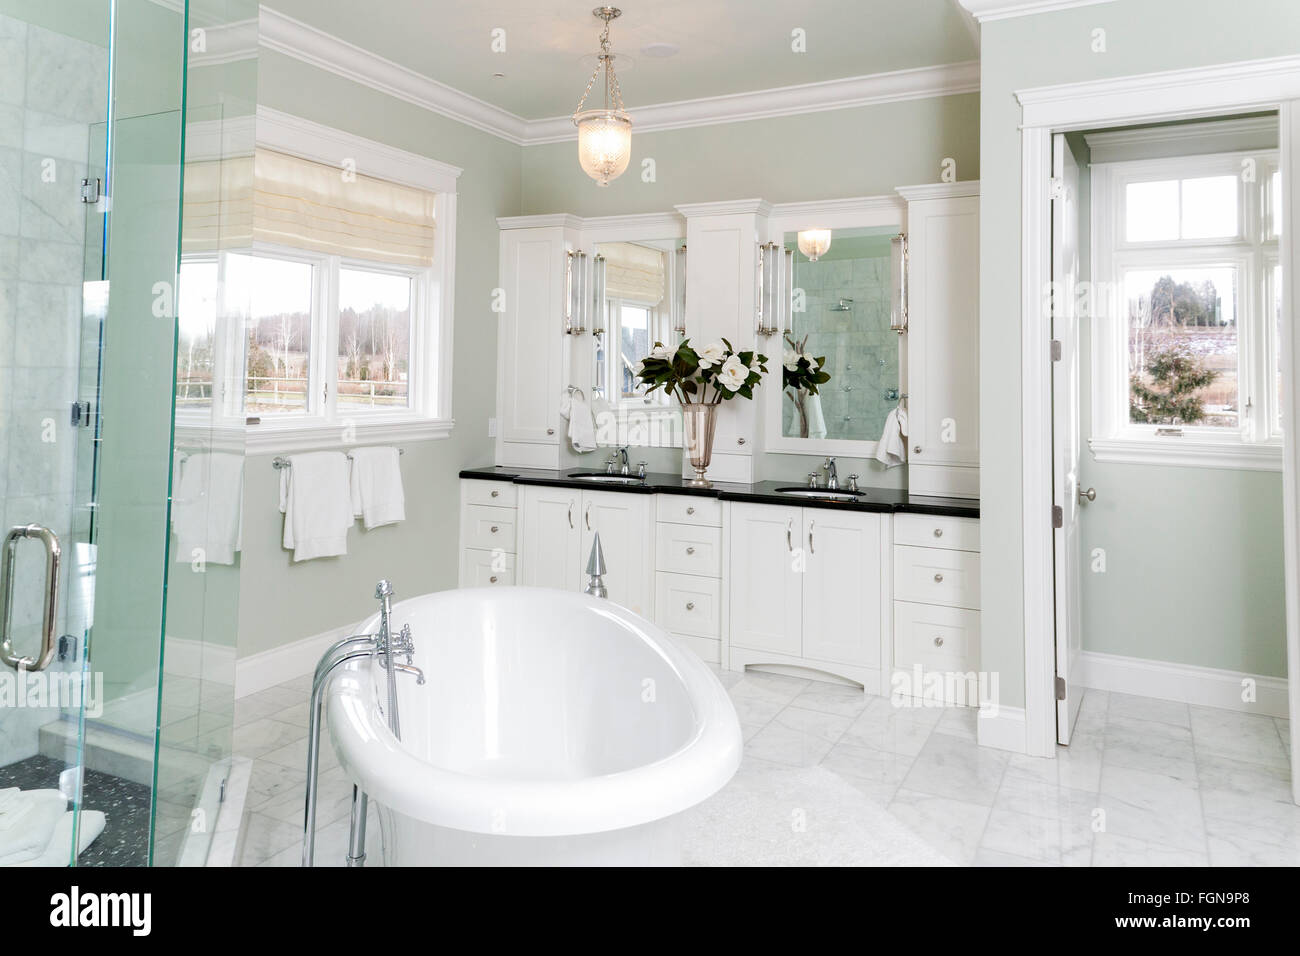 A High End Bathroom Stock Photo 96355008 Alamy